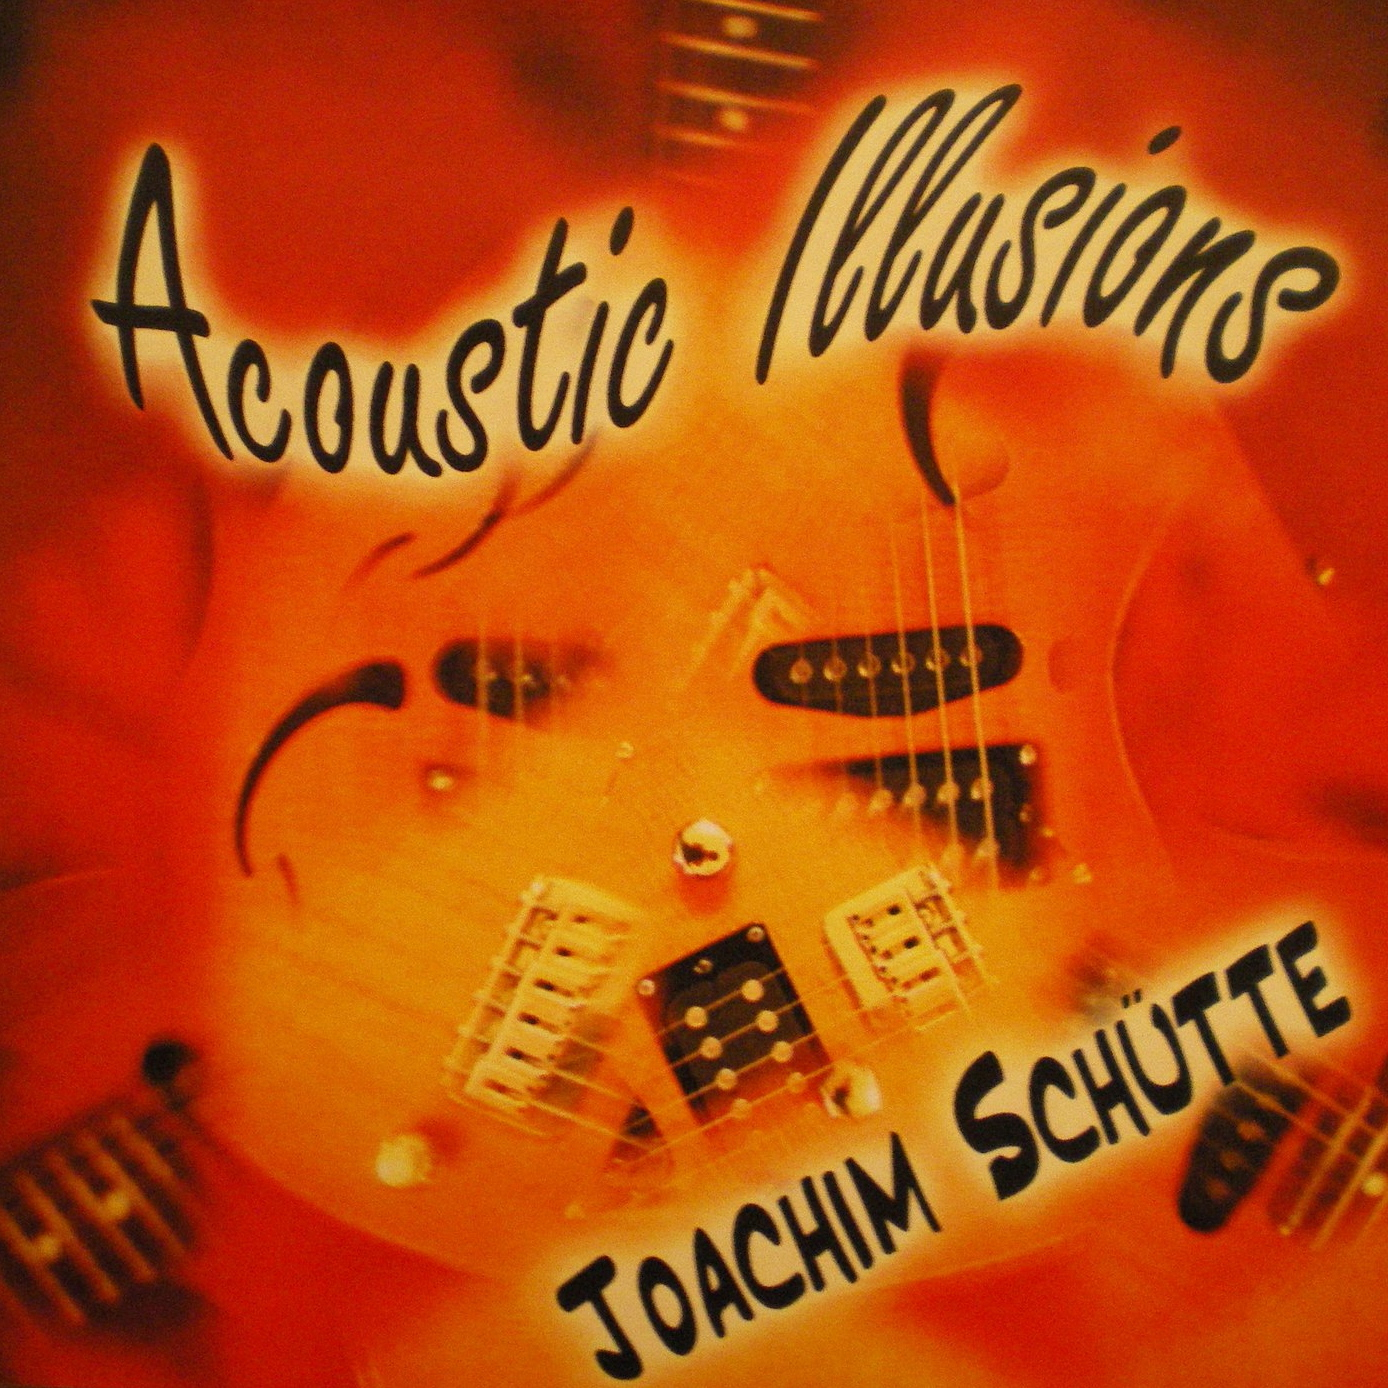 CD Joachim Schütte - Acoustic Illusions